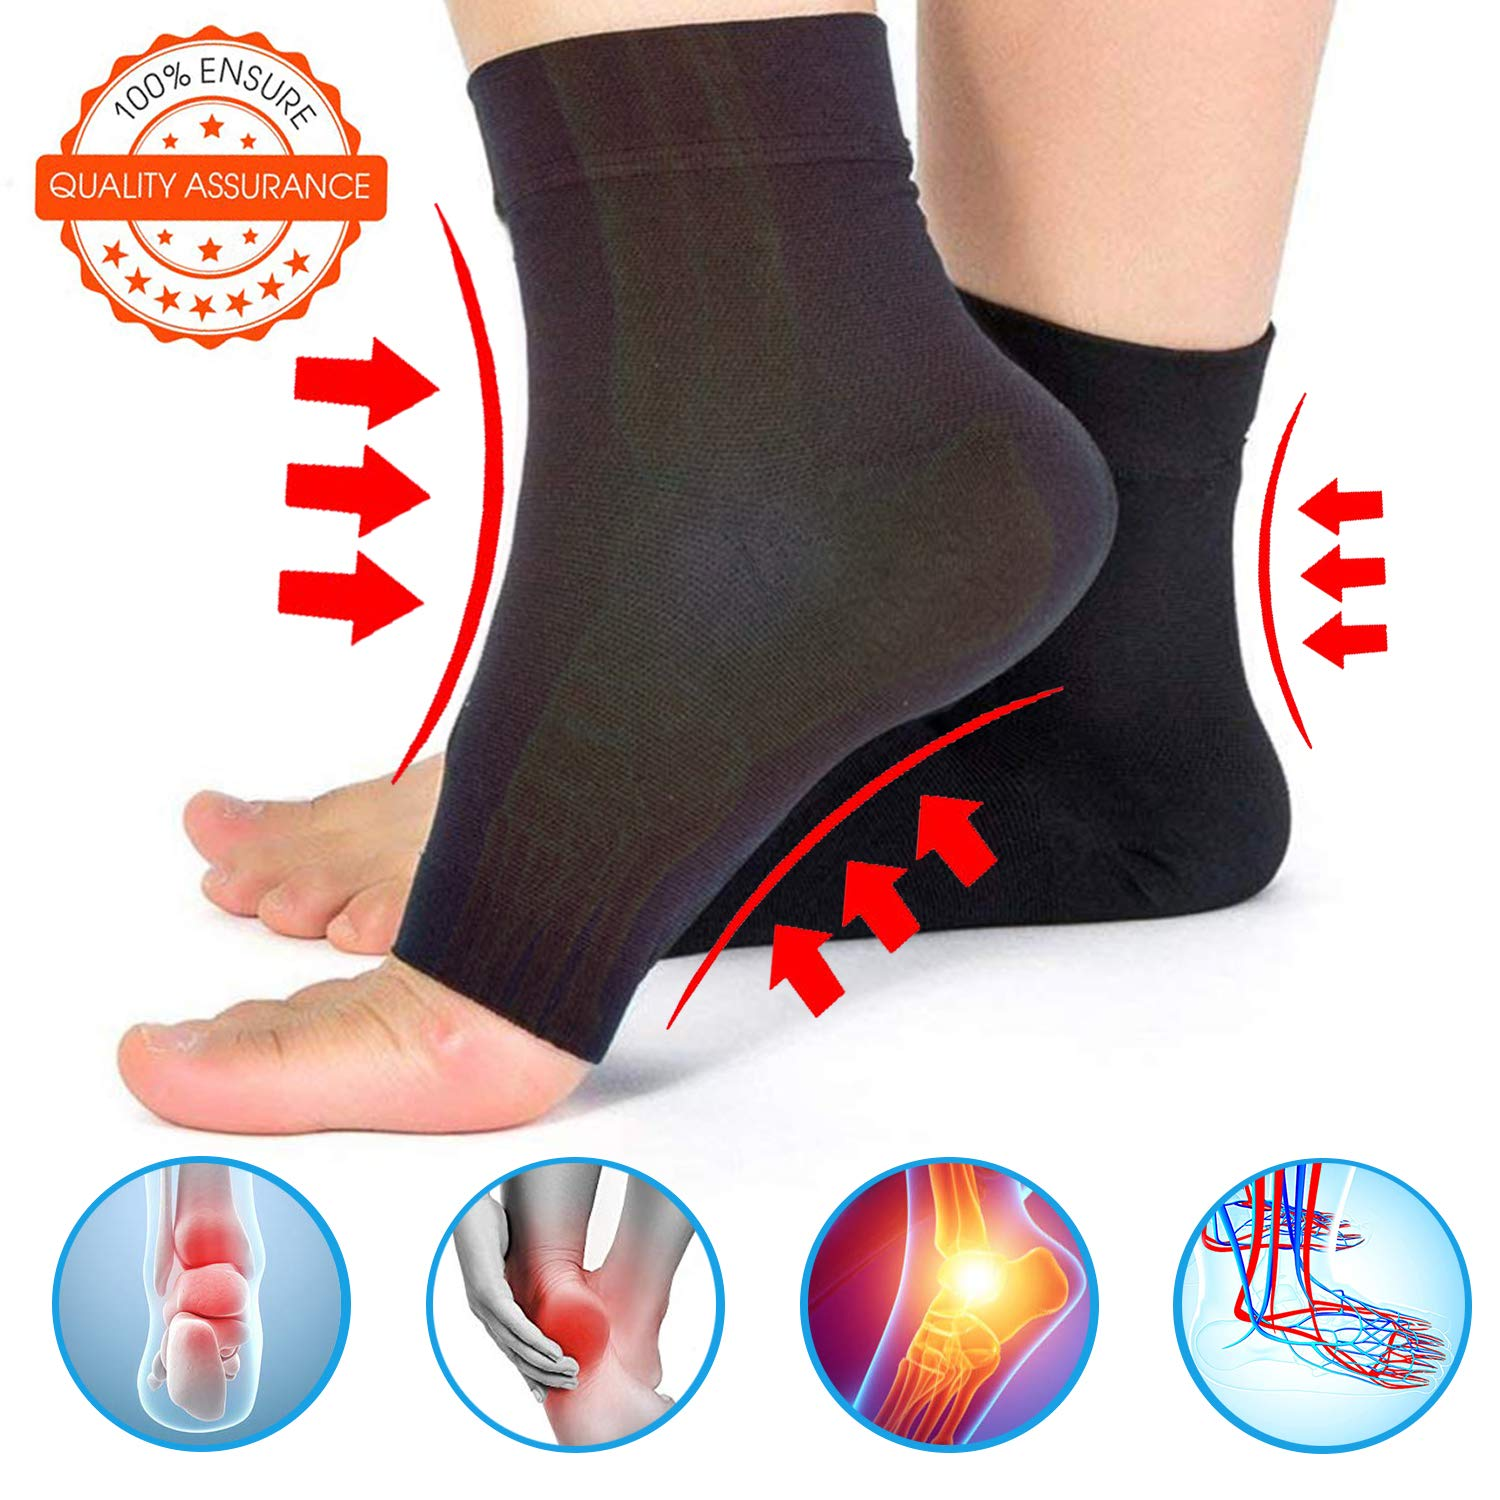 Compression Restoring Relieving Tingling Arthralgia